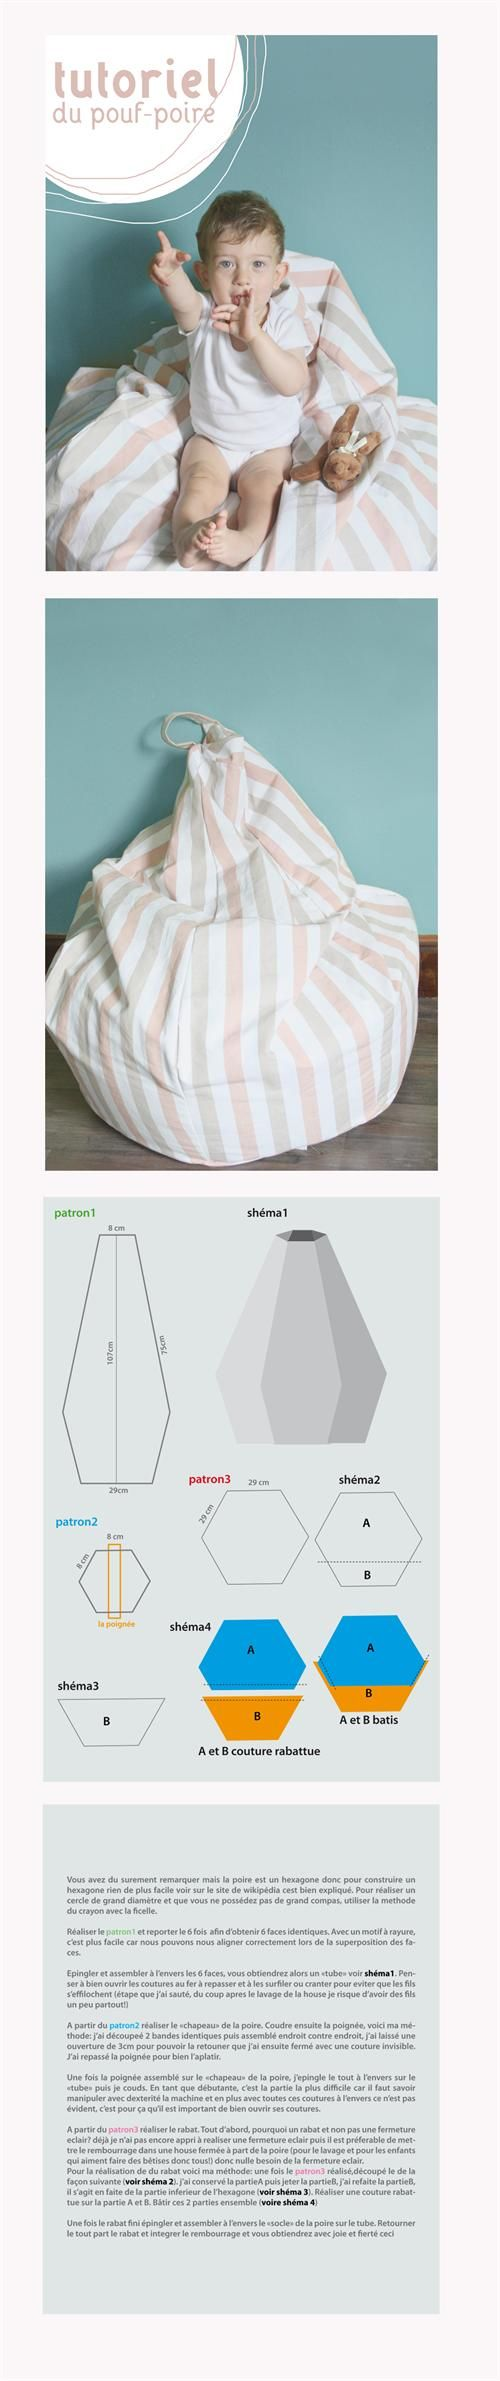 Sewing ideas - nice picture